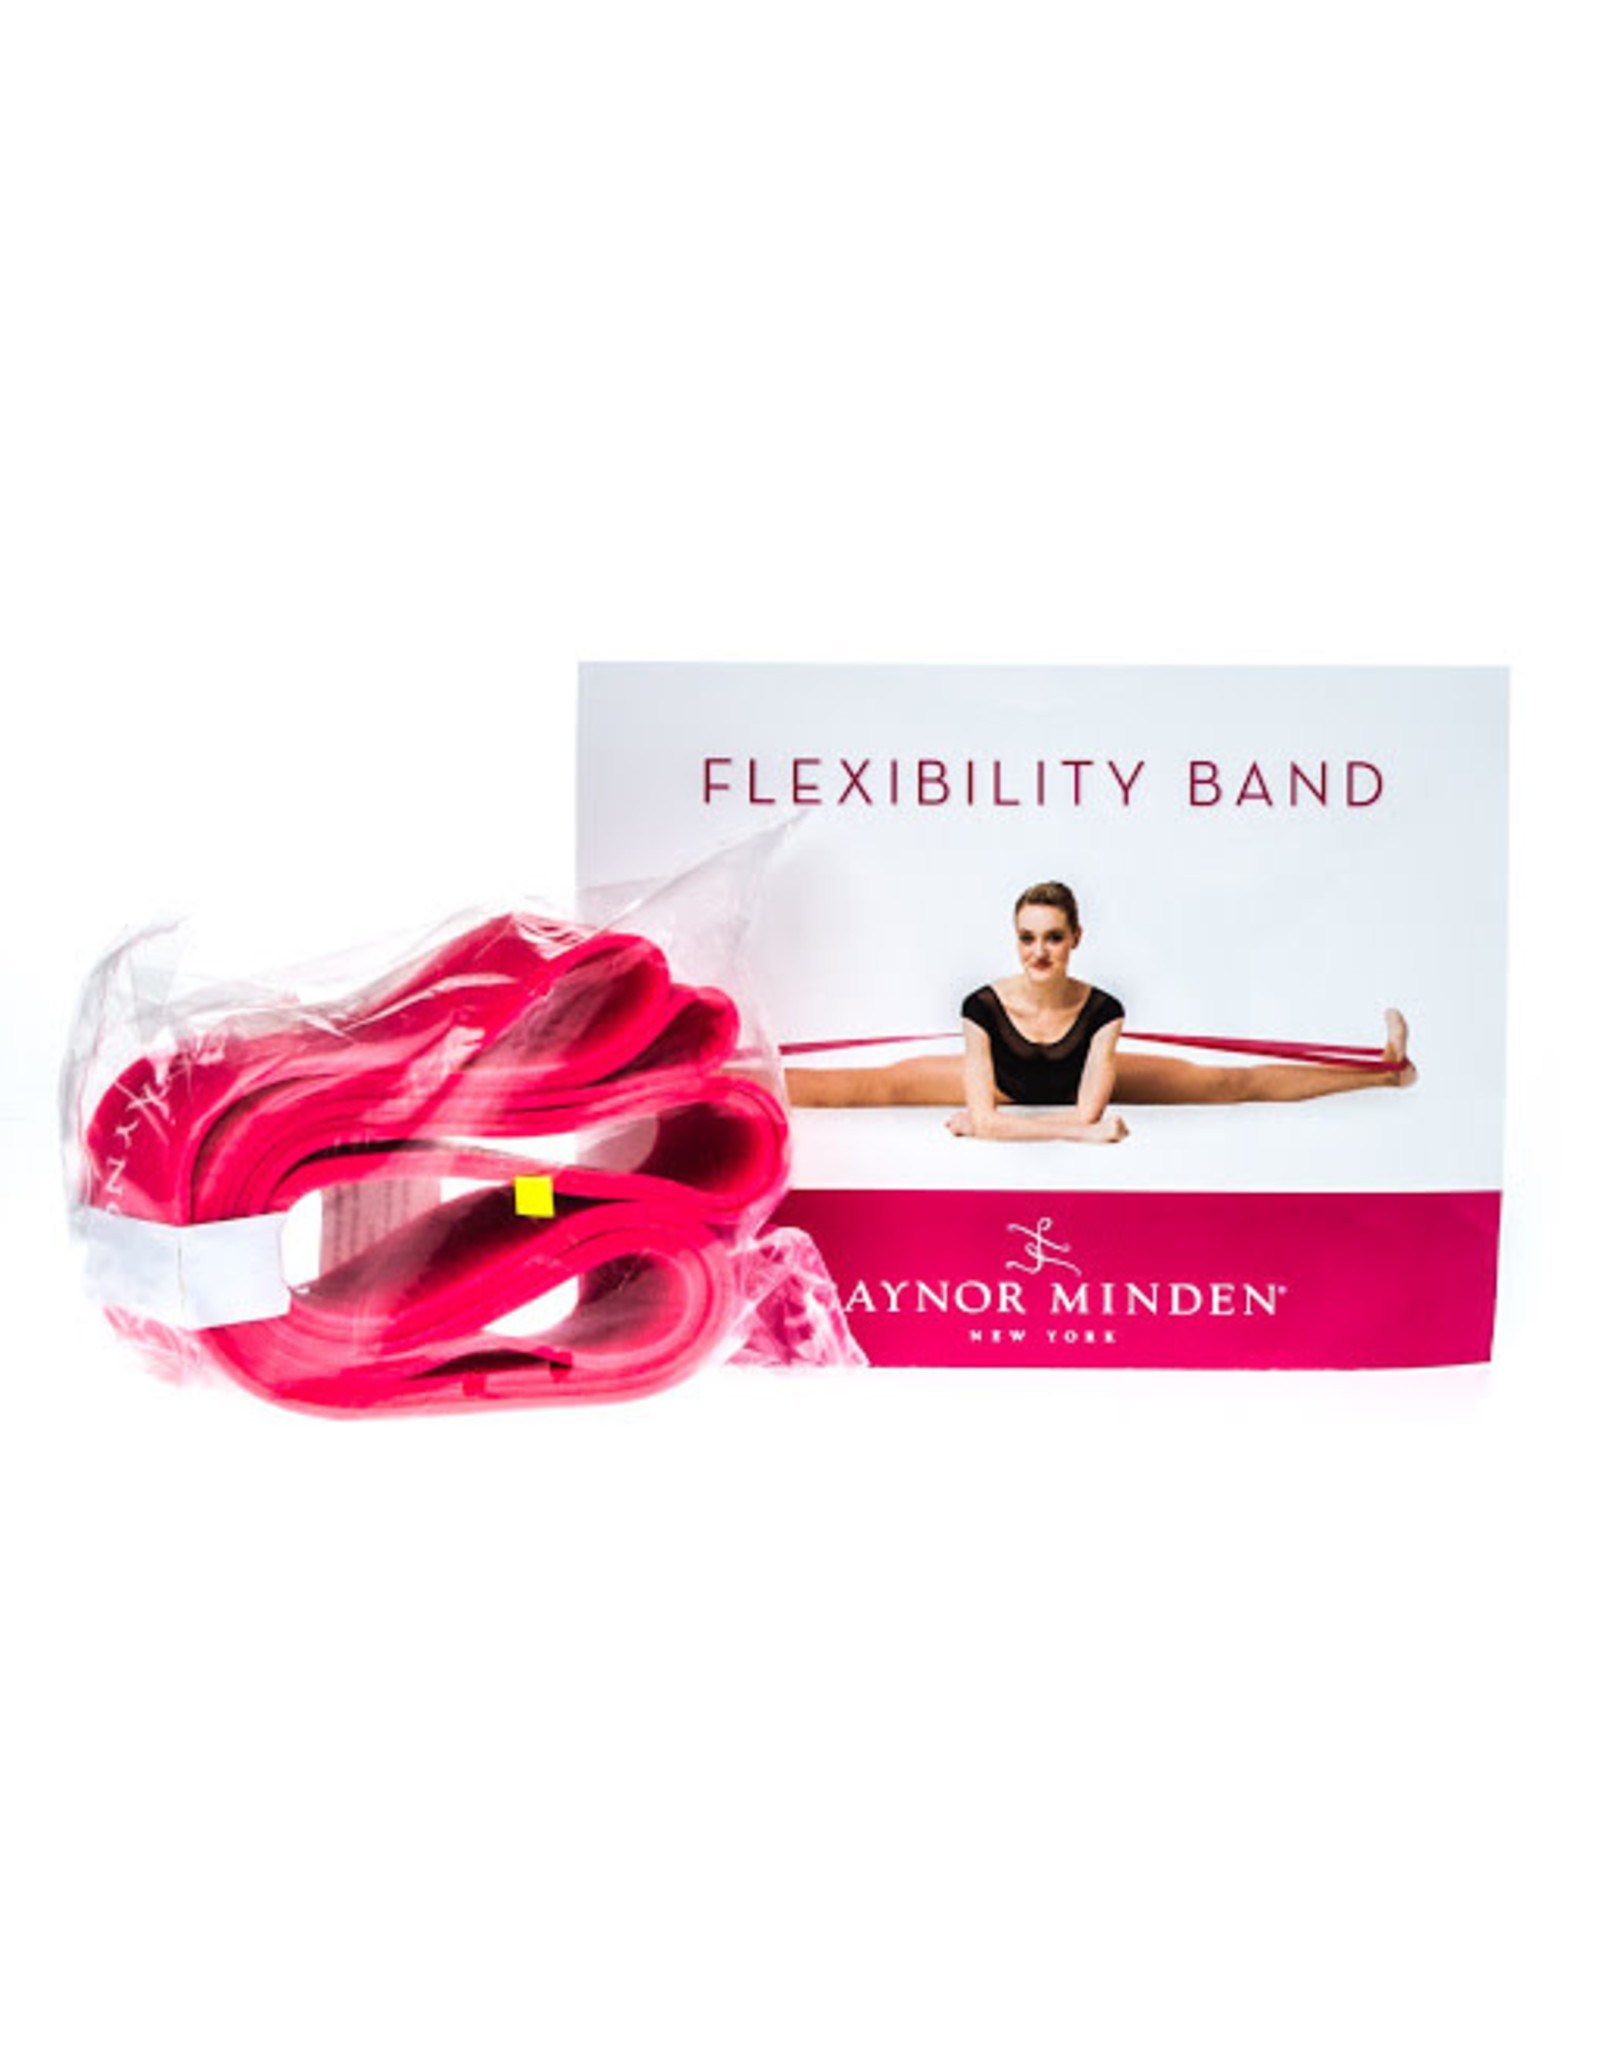 Gaynor Minden Flexibility Band (Powerful Pink)